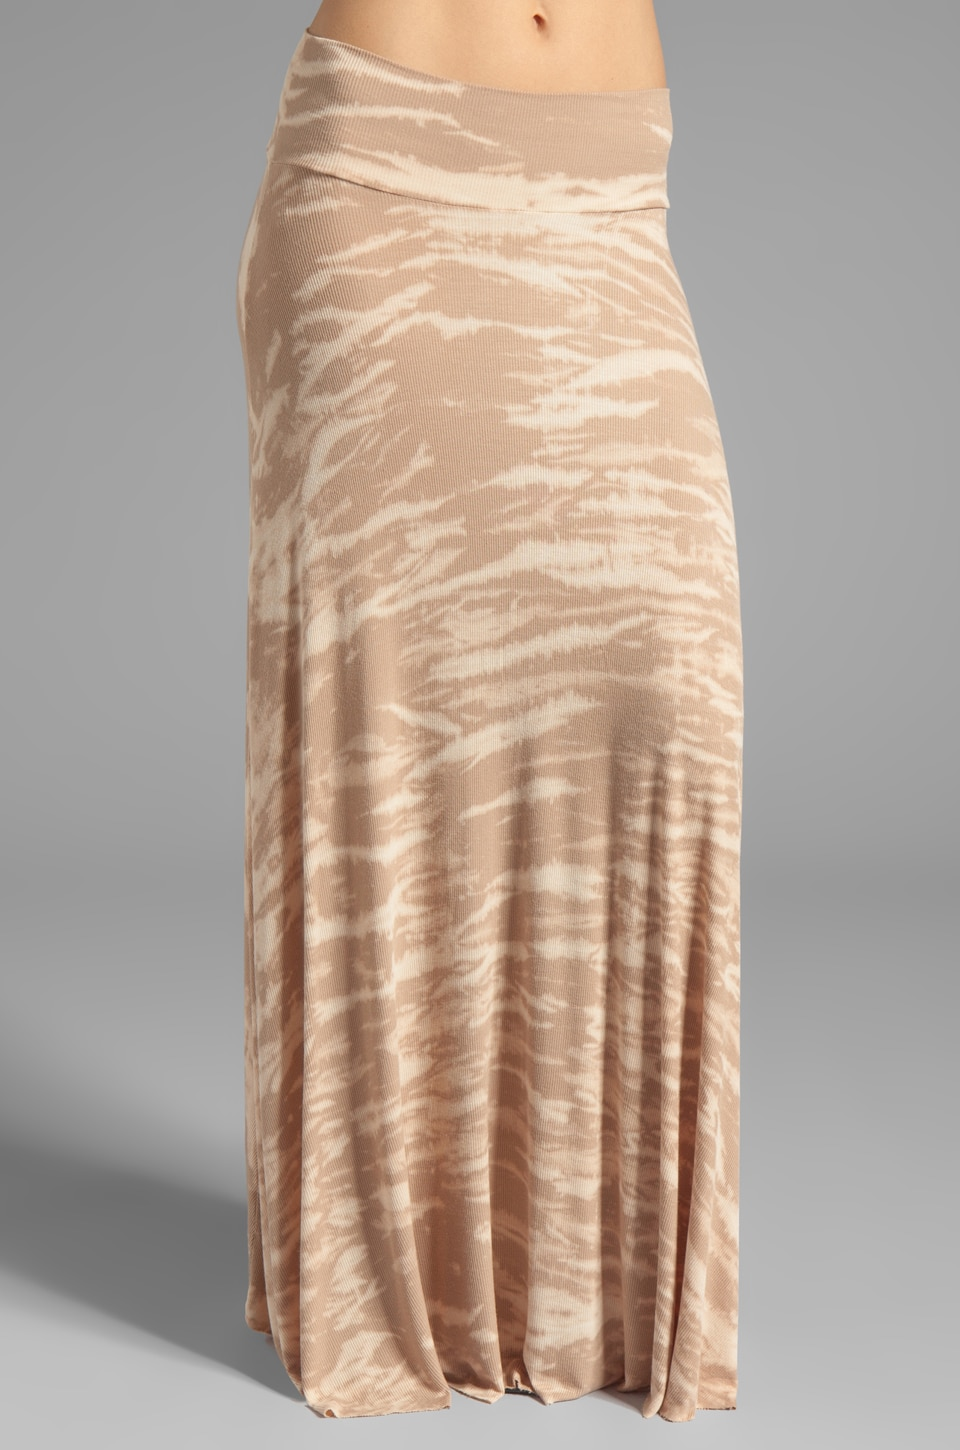 Rachel Pally Rib Long Full Skirt in Bamboo Tie Dye